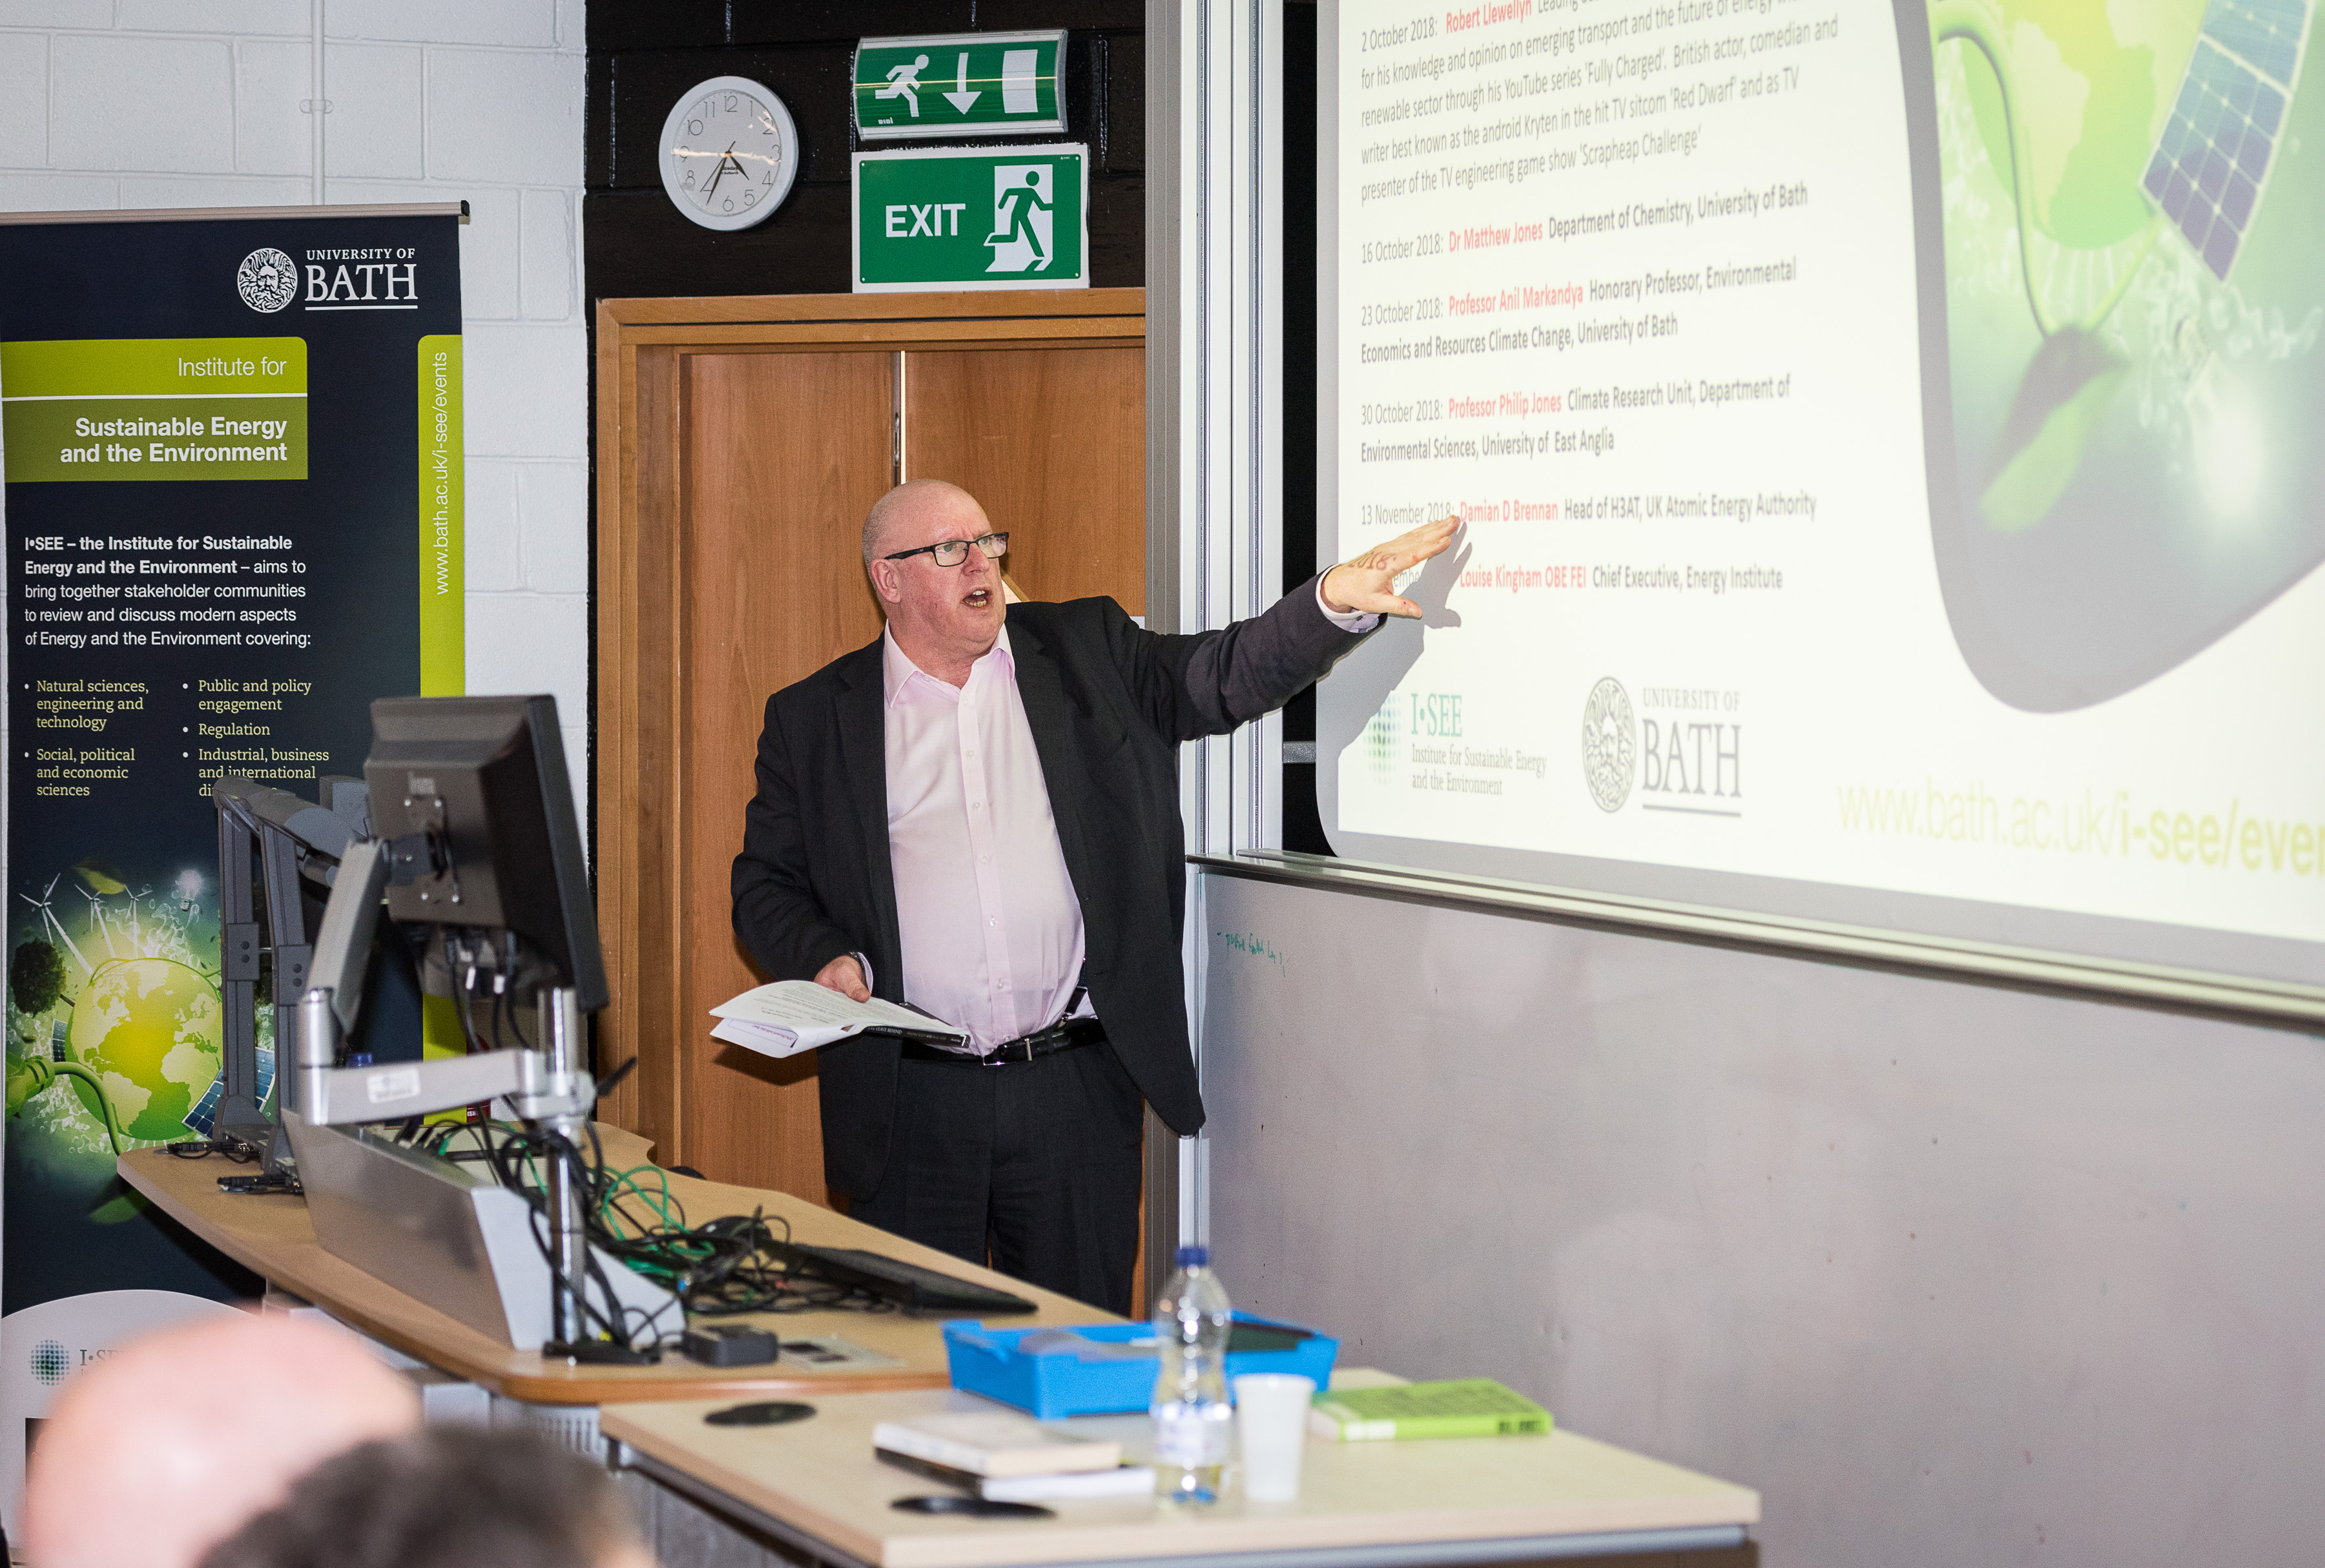 Professor Tim Mays speaking at the I-SEE seminar 'The World We'll Leave Behind: grasping the sustainability challenge' in February 2018